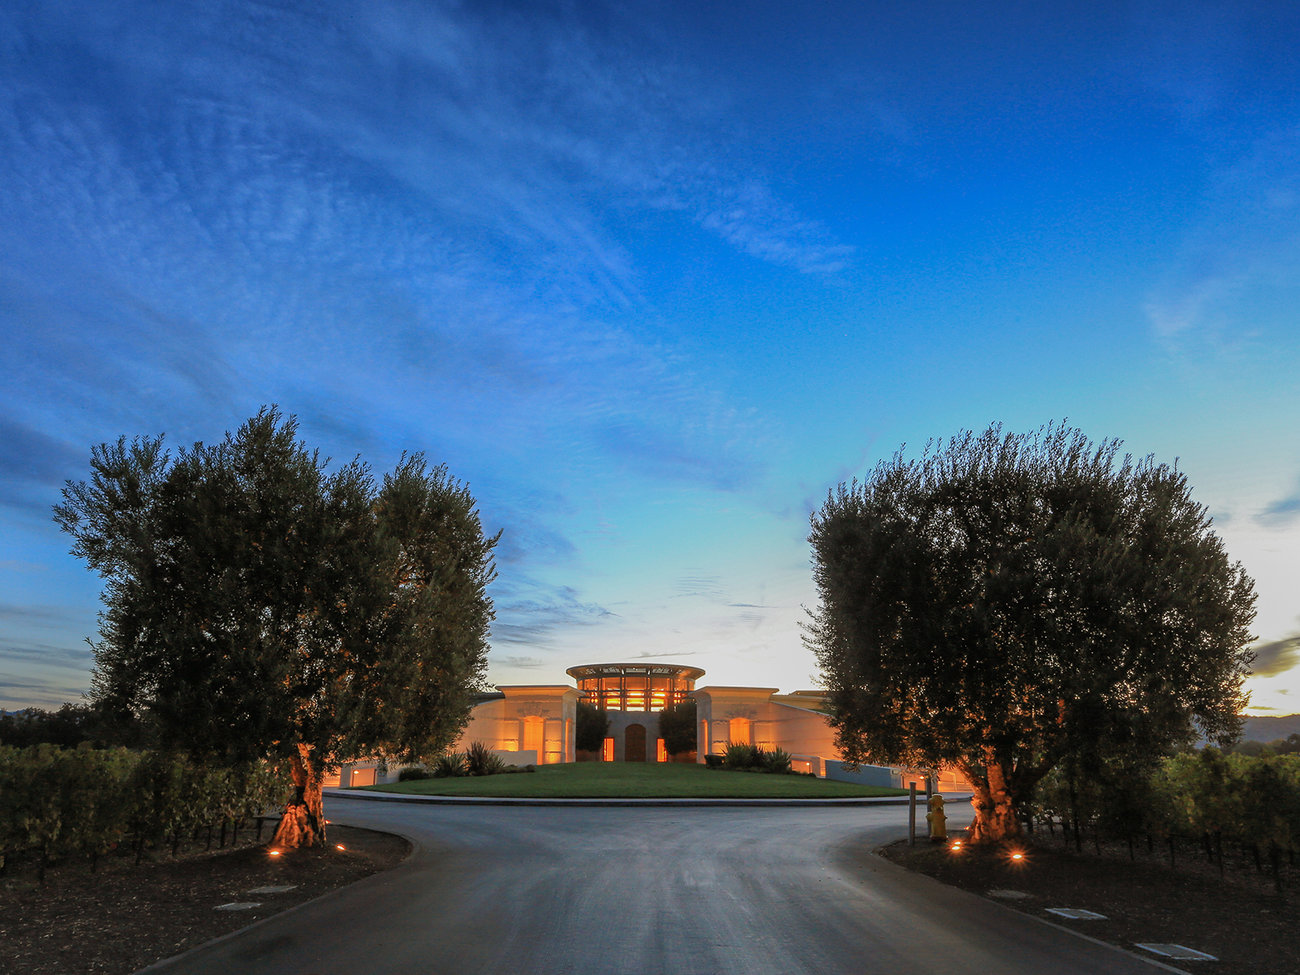 Opus One Winery in Napa